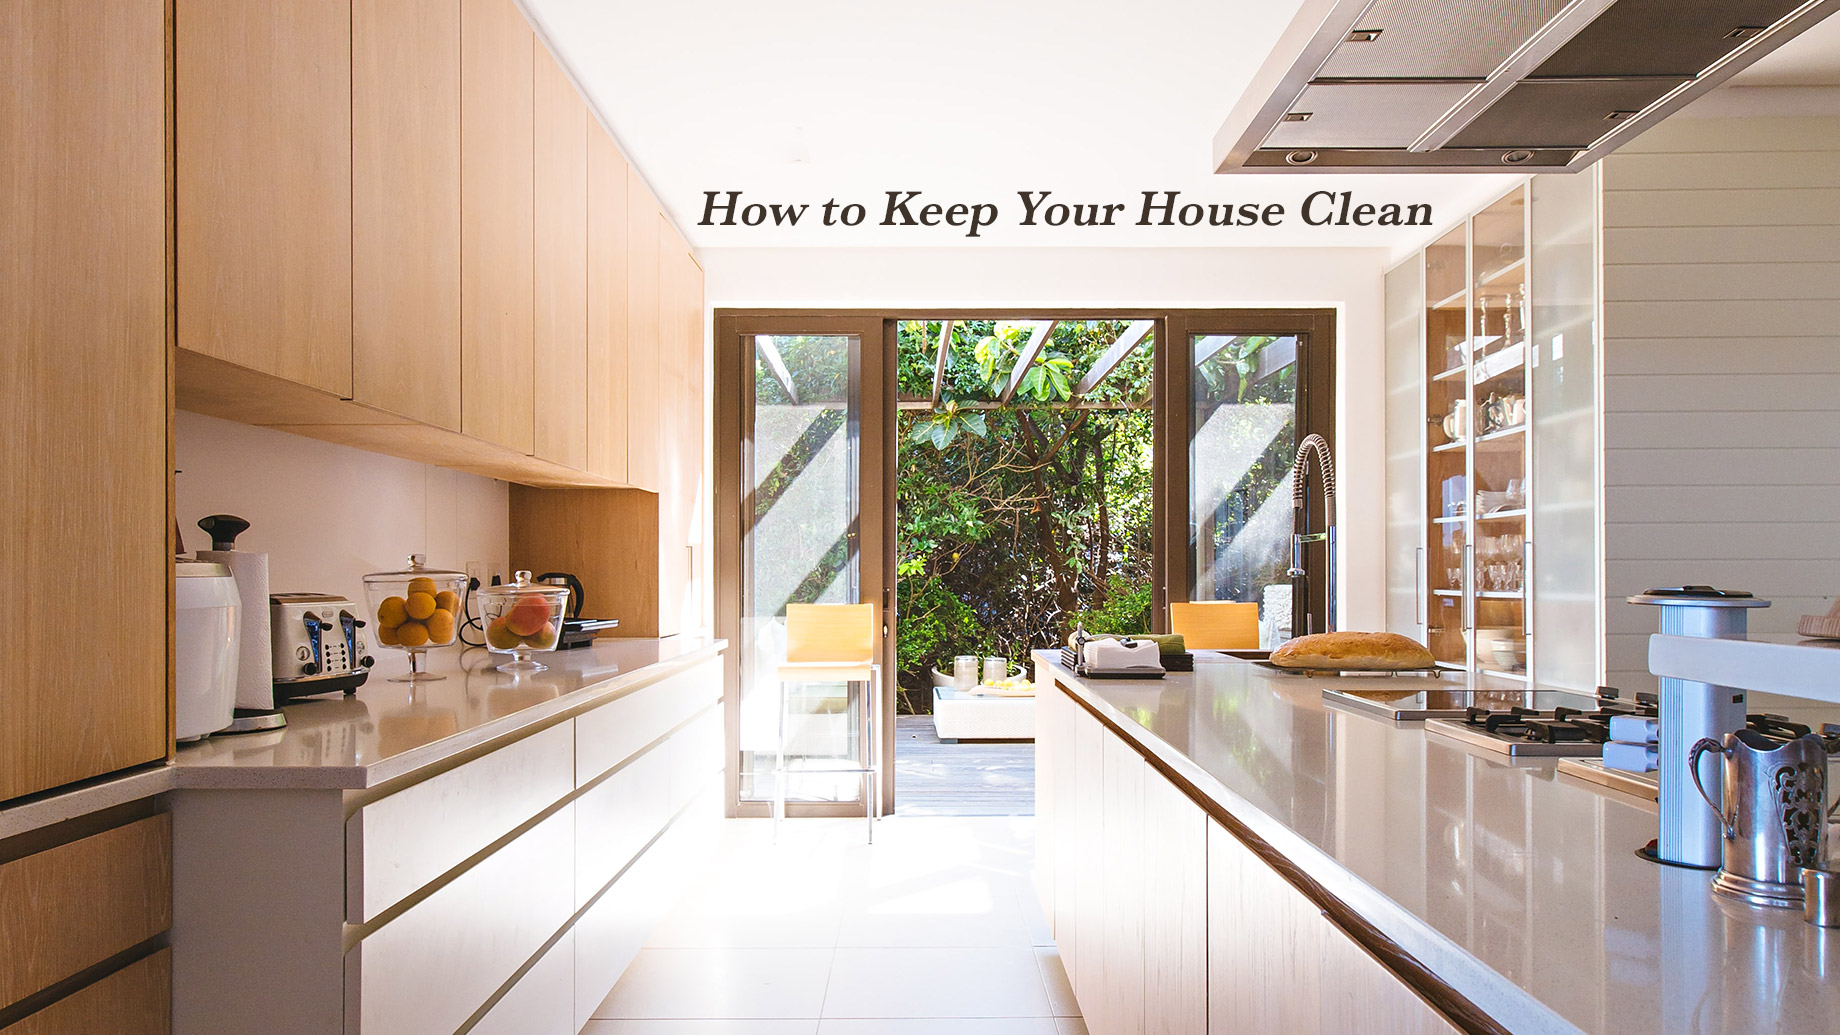 How to Keep Your House Clean - The Complete Guide